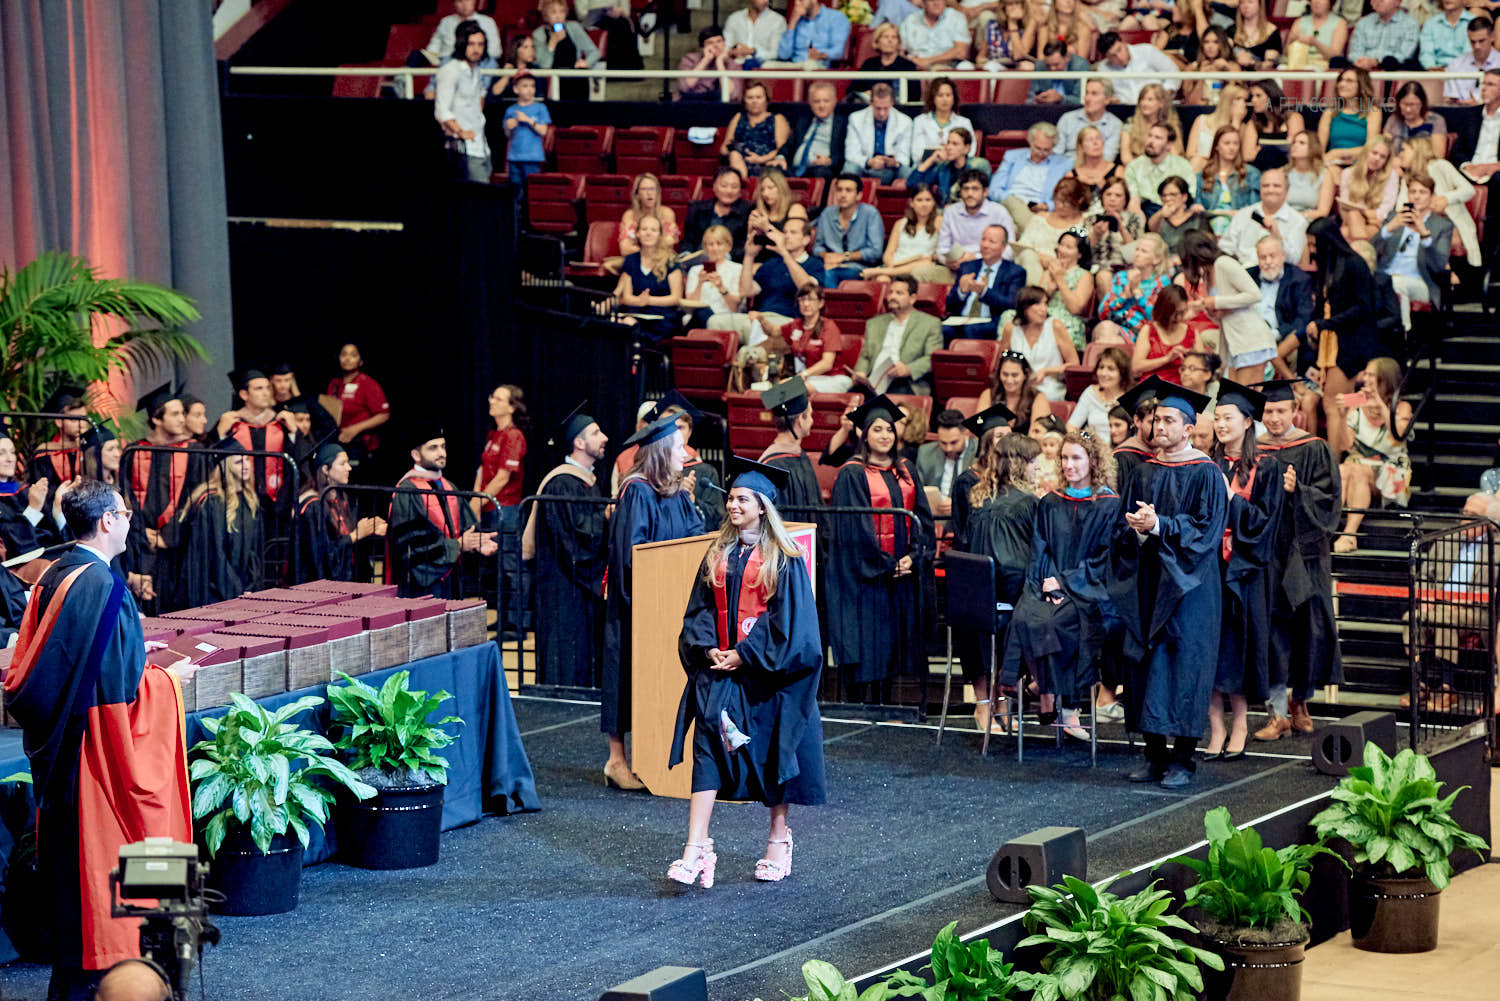 The actual moment of getting awarded MBA degree at Stanford.